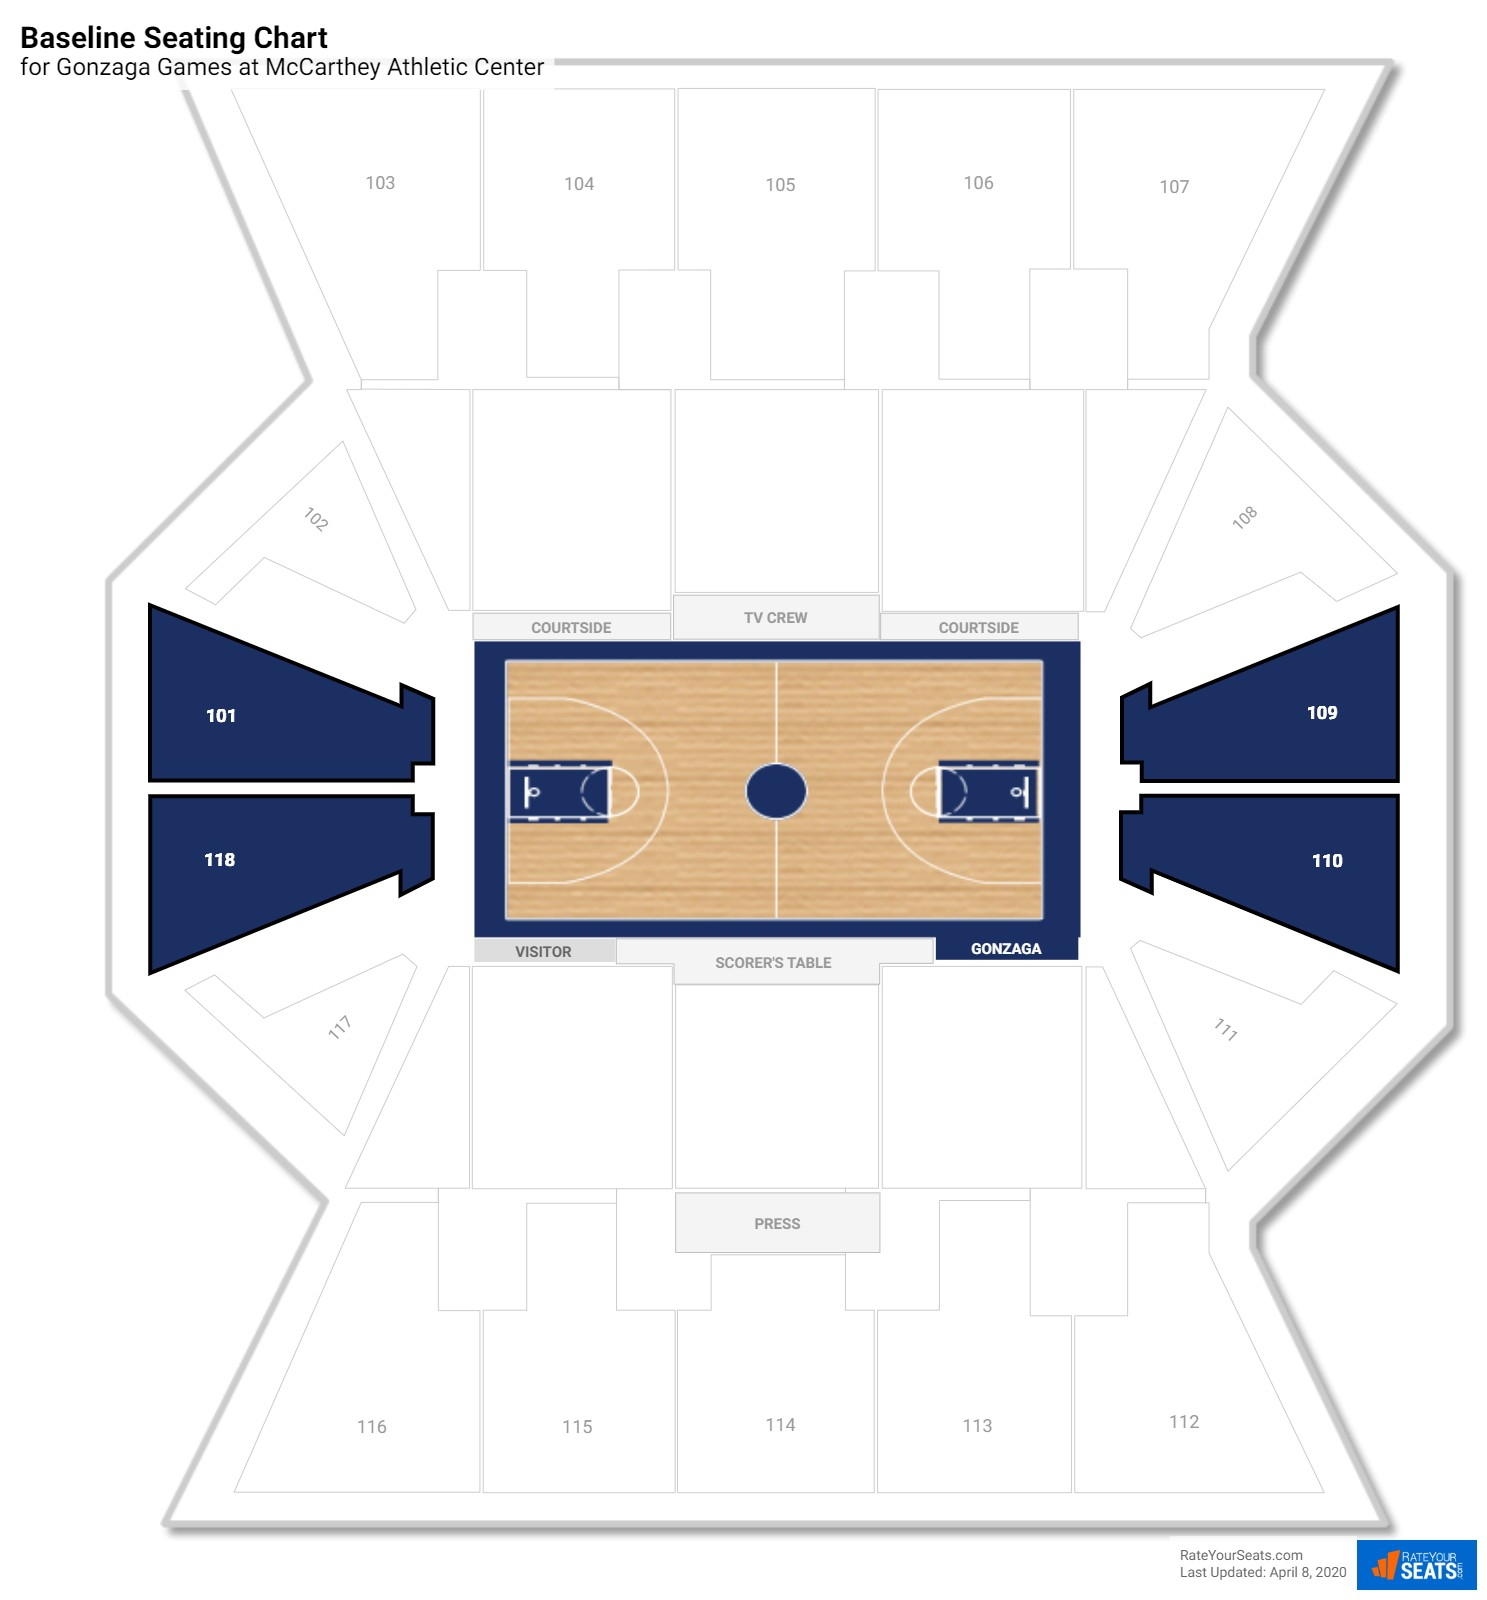 Mccarthey Athletic Center Gonzaga Seating Guide Rateyourseatscom